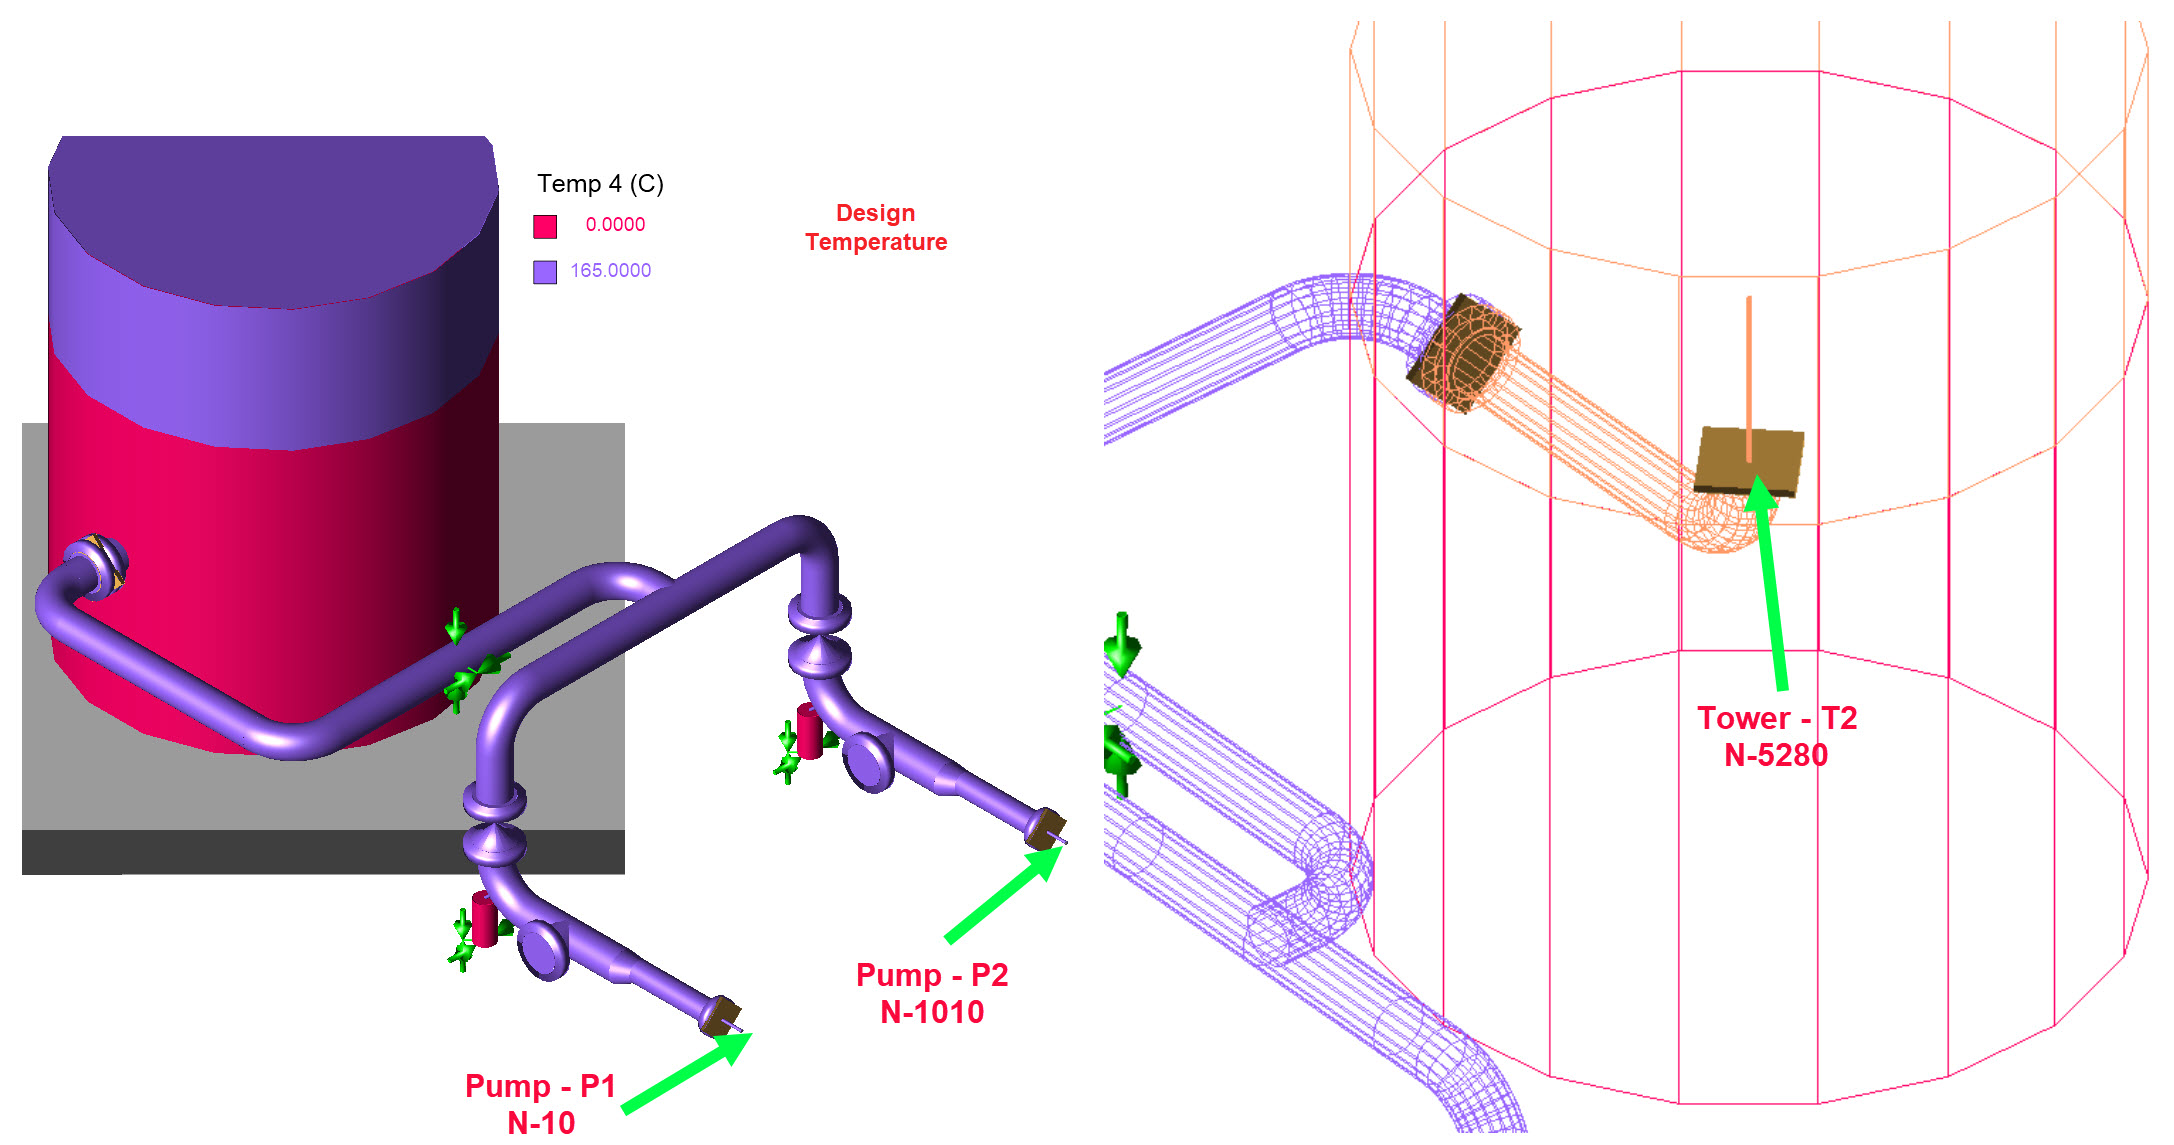 Pipe Stress Analysis Sample Report Pressure Vessel Engineering Piping Layout Tools Model Created In Caesar Ii All Materials Sizes Dimensions And Conditions Have Been Loaded